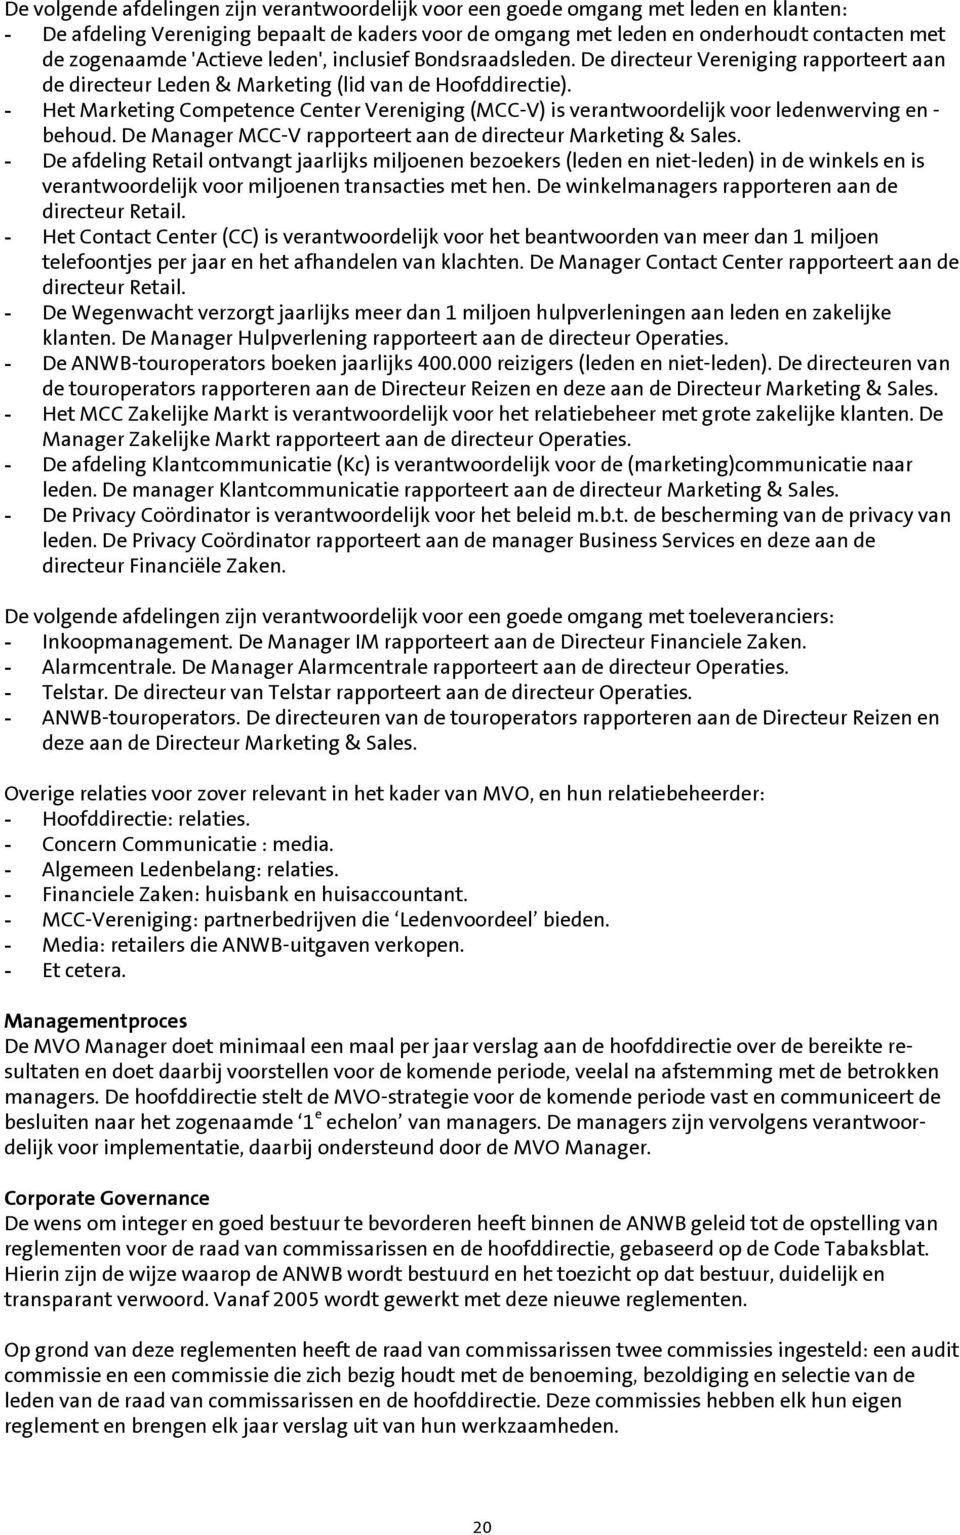 - Het Marketing Competence Center Vereniging (MCC-V) is verantwoordelijk voor ledenwerving en - behoud. De Manager MCC-V rapporteert aan de directeur Marketing & Sales.